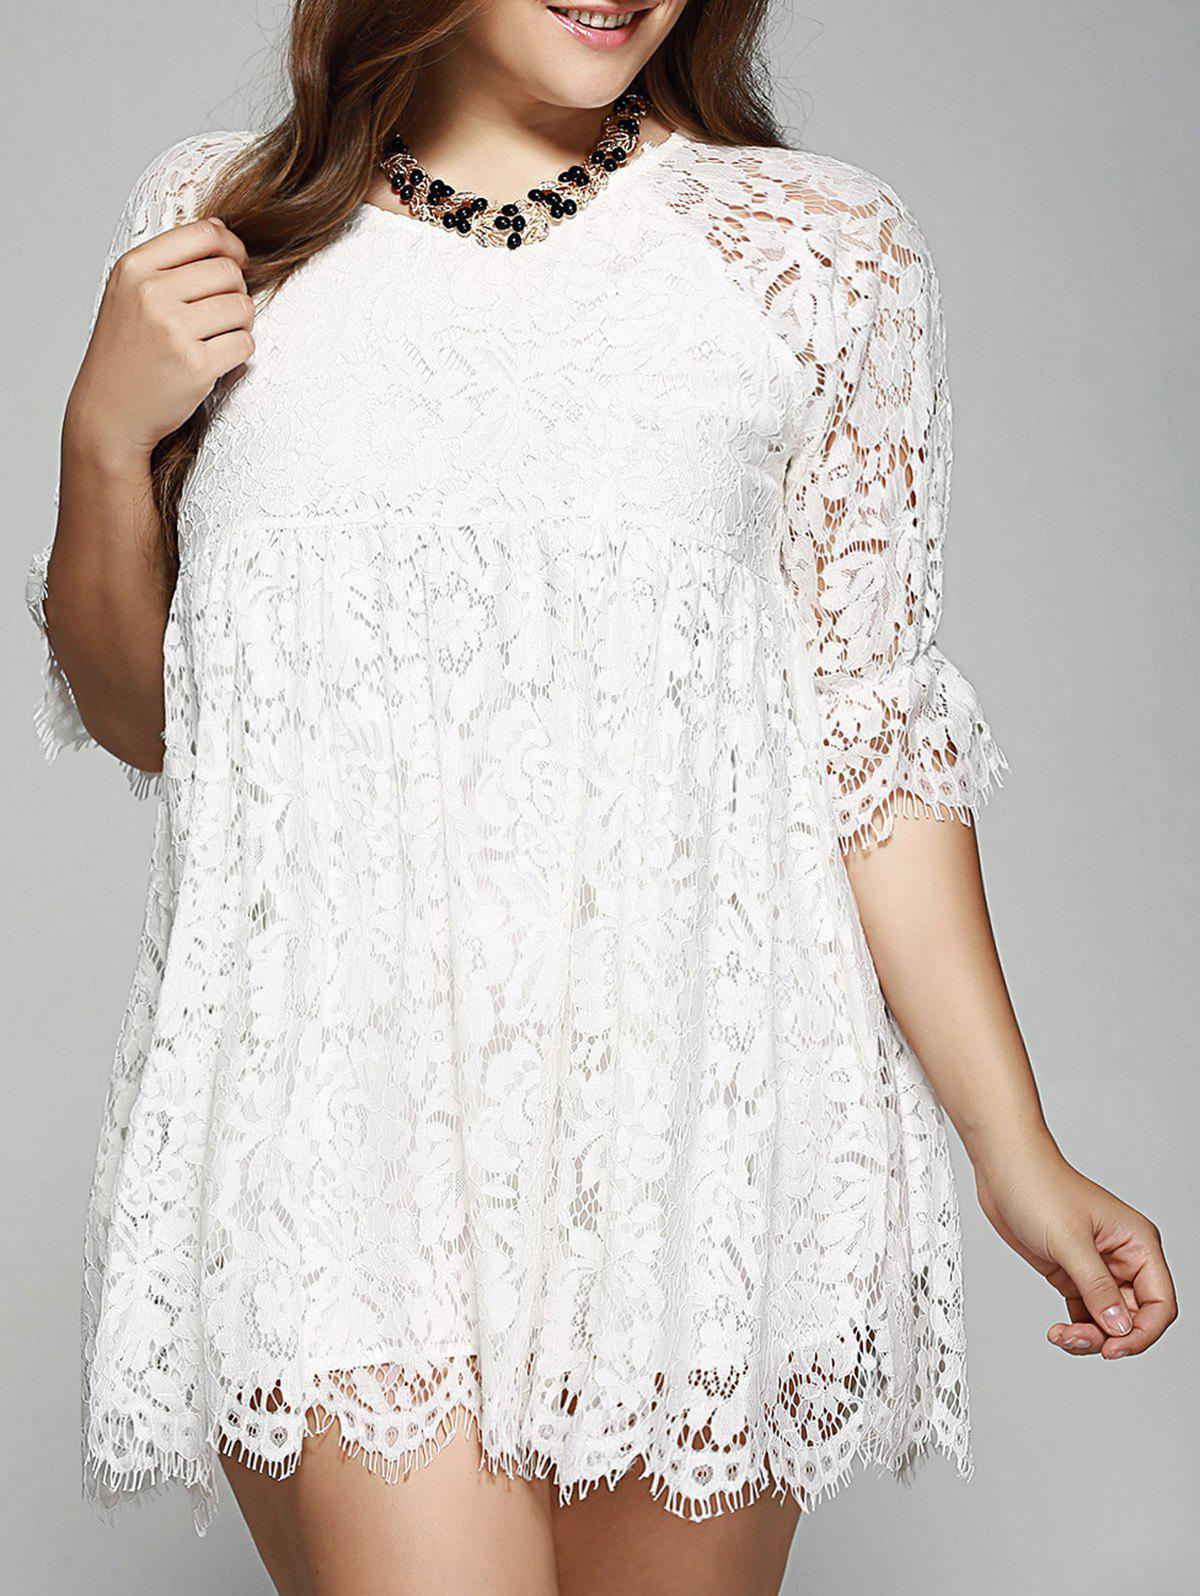 Oversized A-Line Scalloped Edge Lace Dress - WHITE 4XL